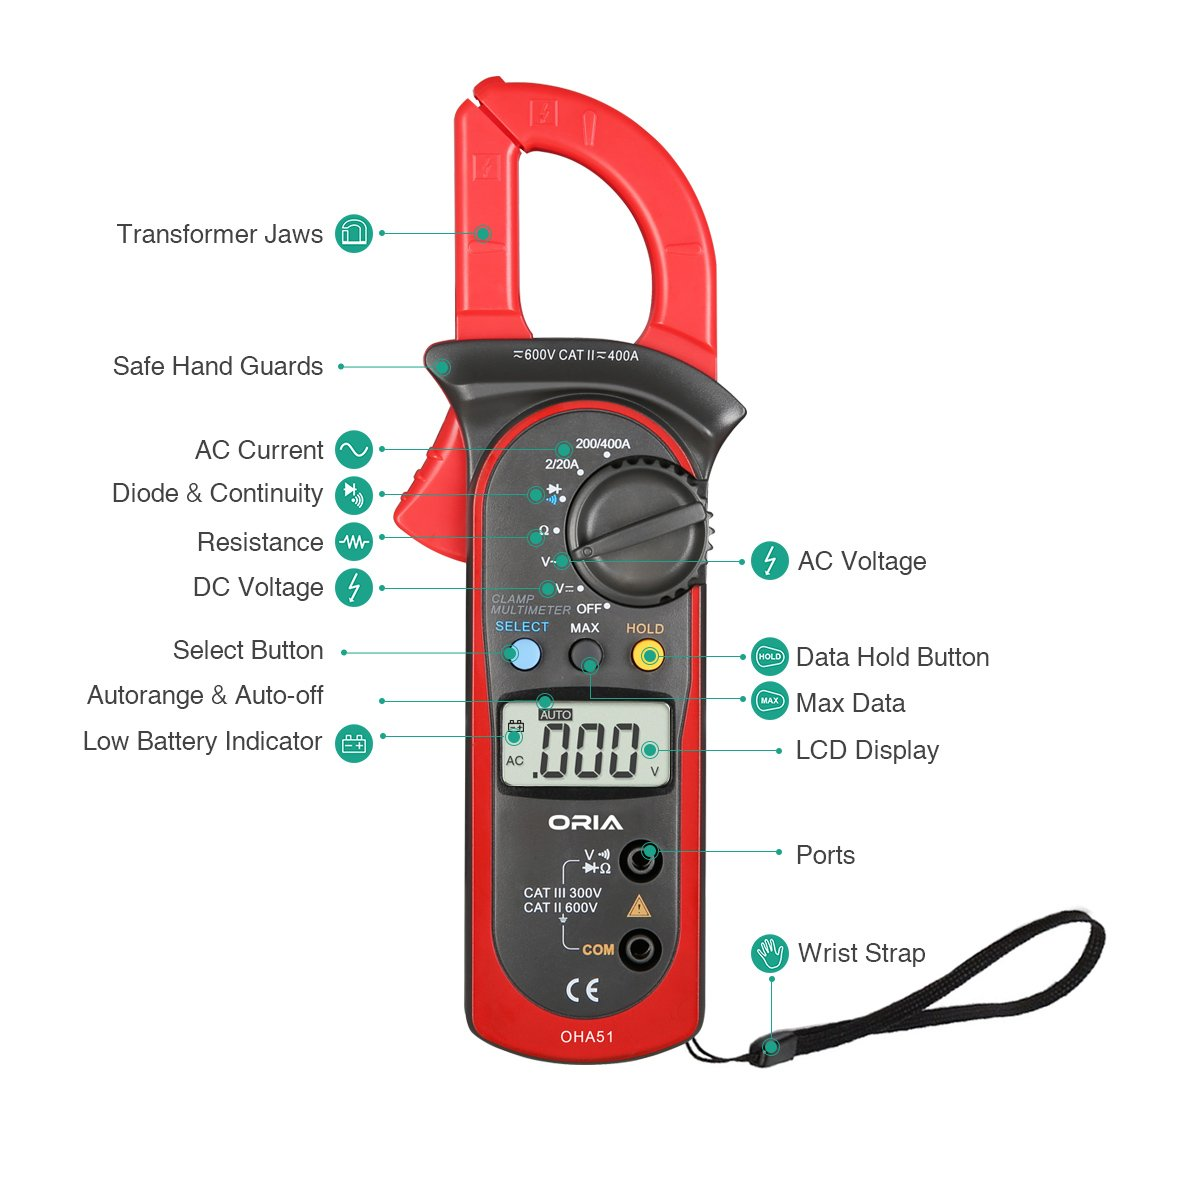 Digital Handheld Clamp Multimeters, Auto-Ranging Multimeter AC/DC Voltmeter with Voltage, AC Current, Amp, Volt, Ohm, Tests Diodes and Resistance Test ...